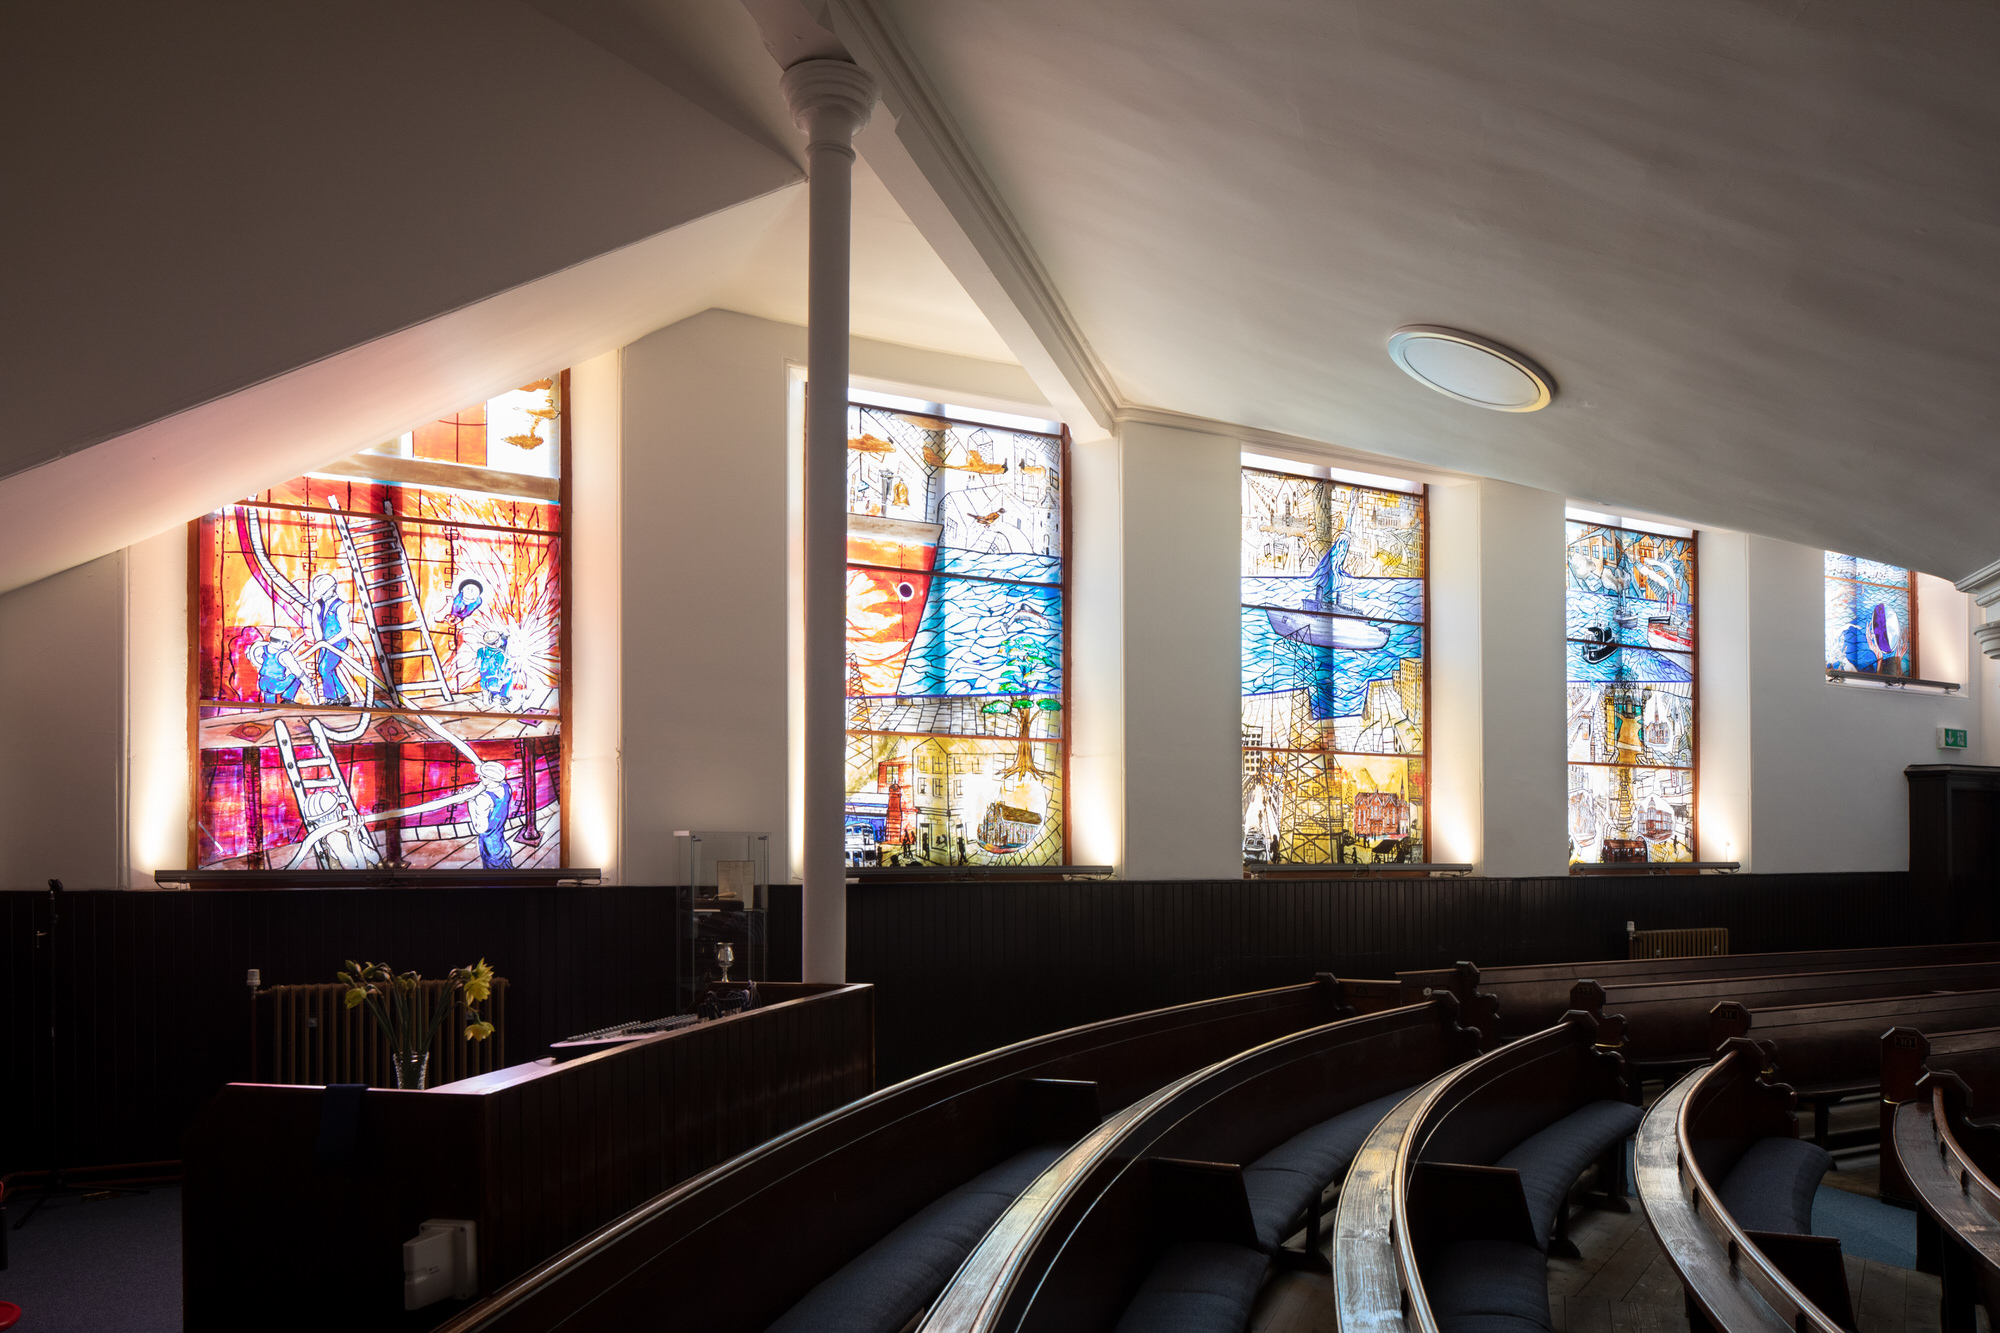 Stain glass art and craft | Church of Scotland | By McAteer Photo